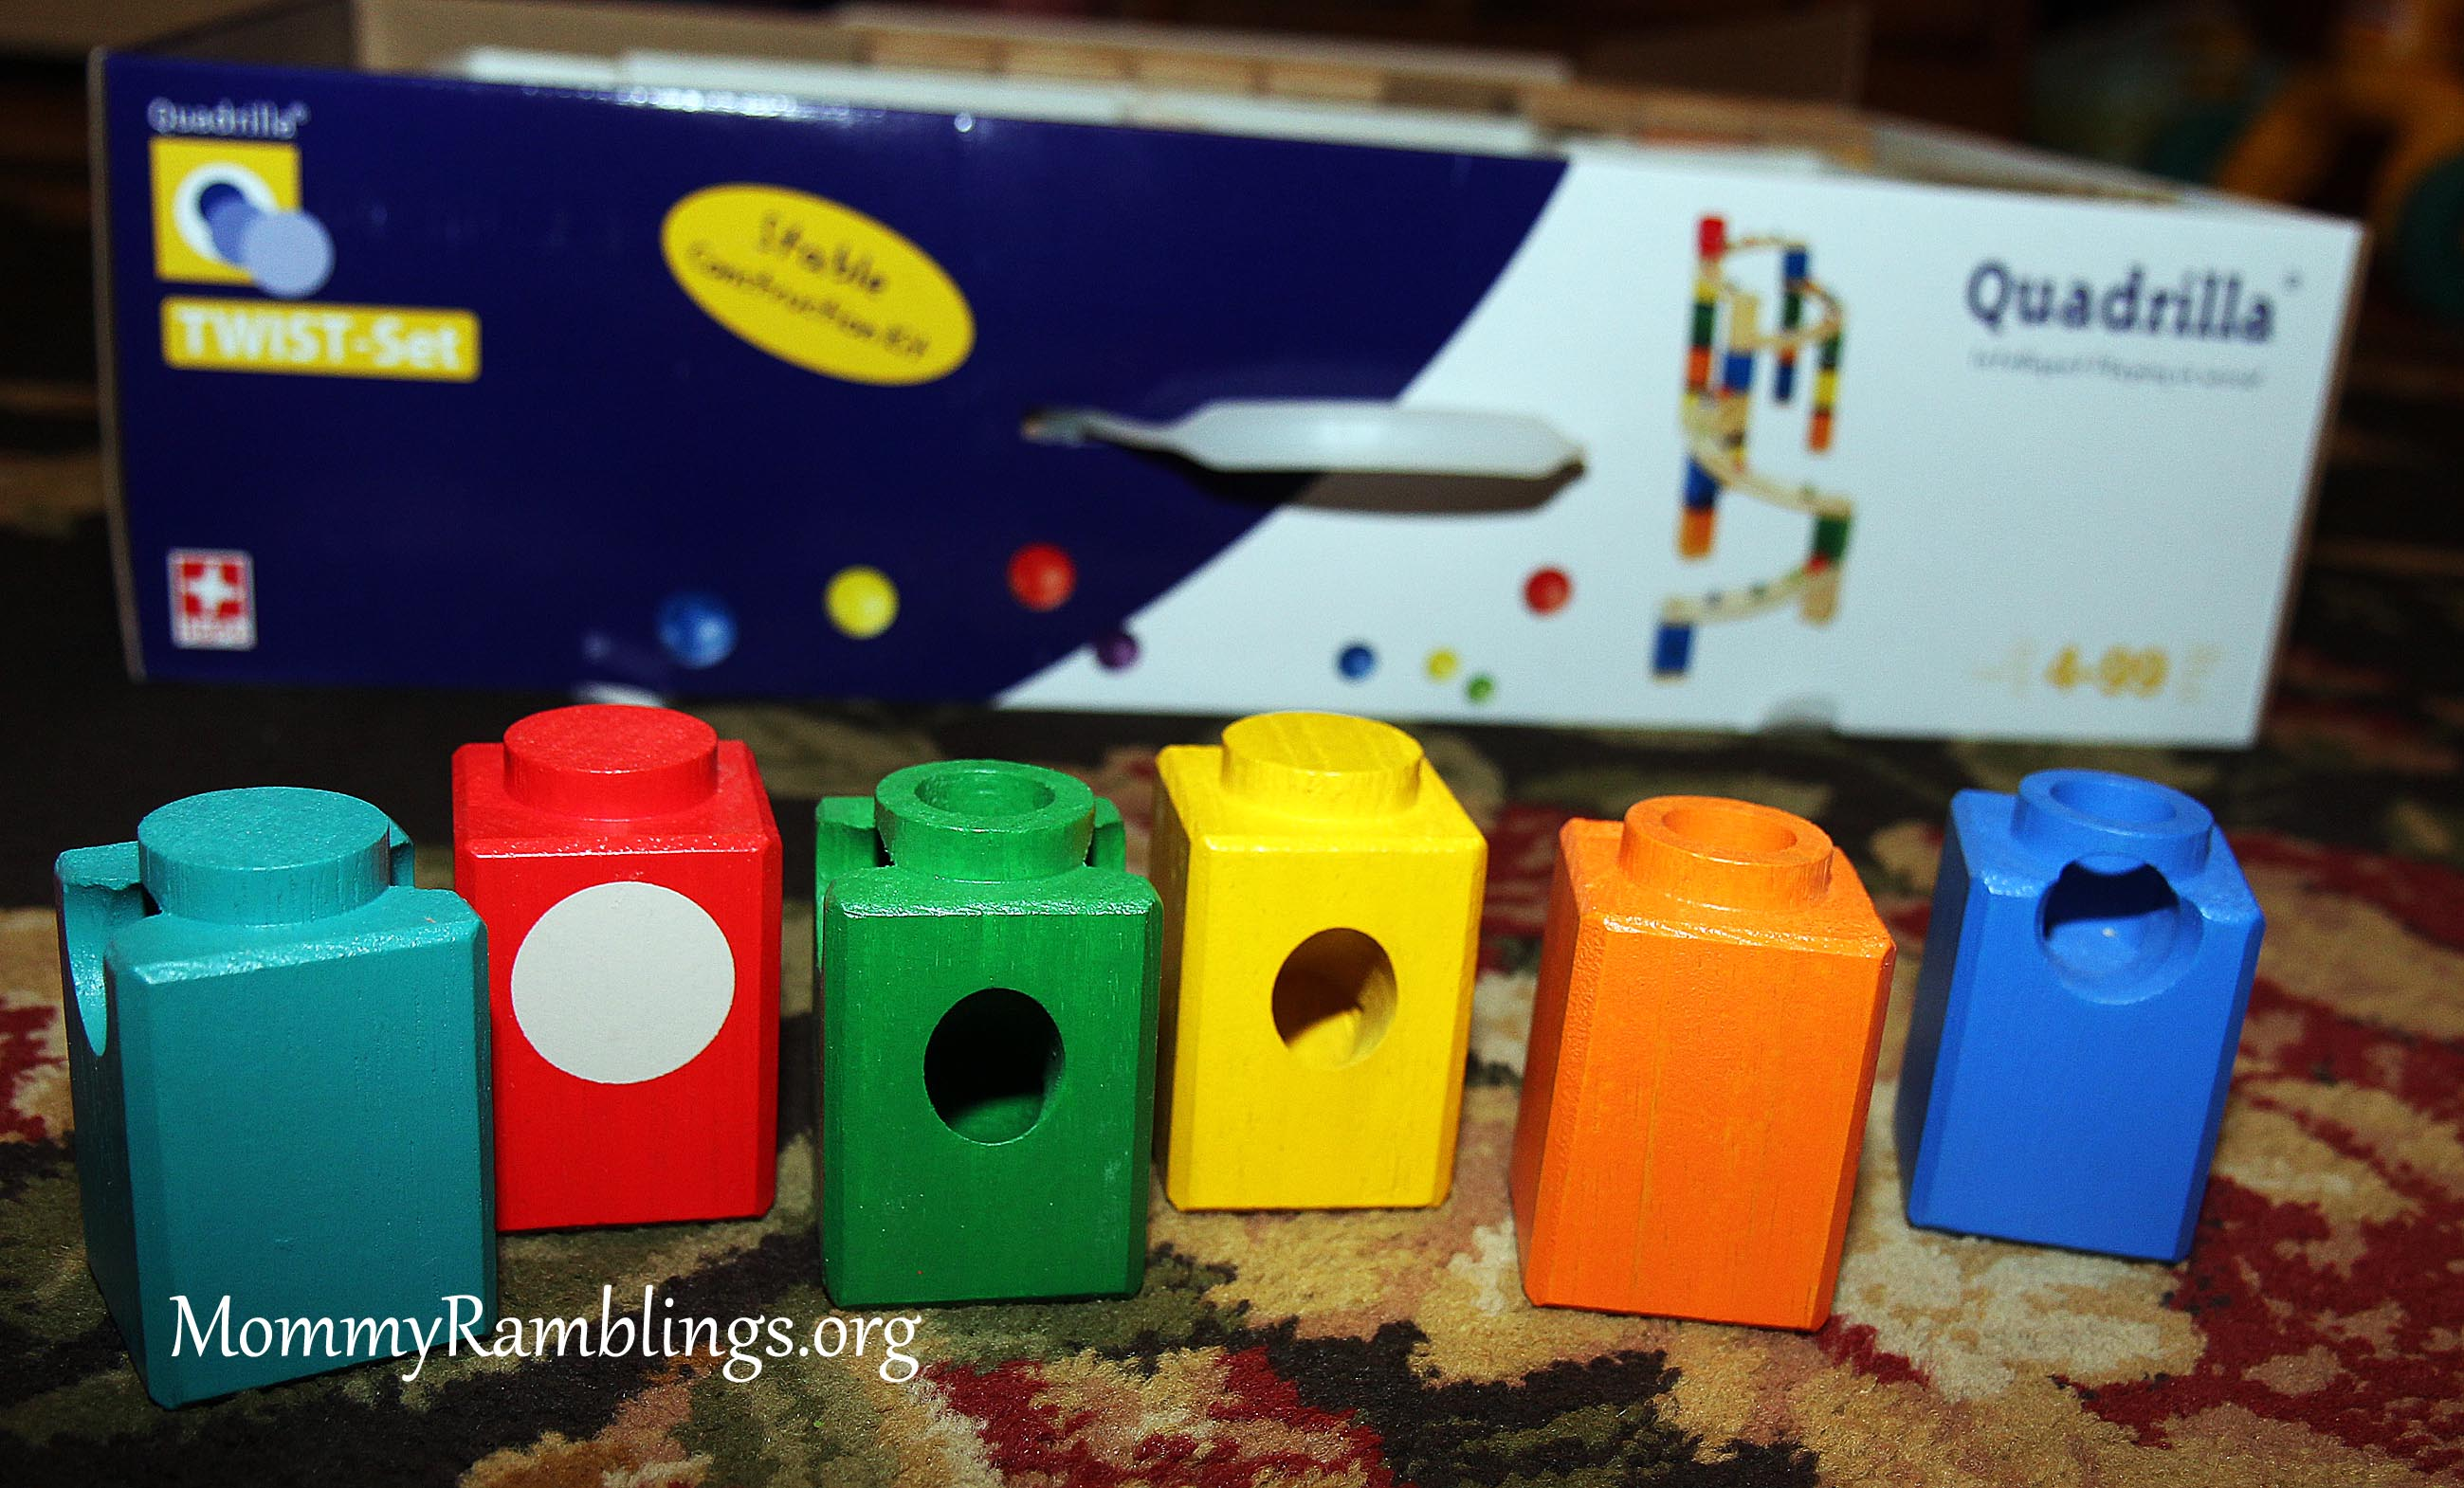 Open Toy Blast On Facebook : Quadrilla twist set archives mommy ramblings